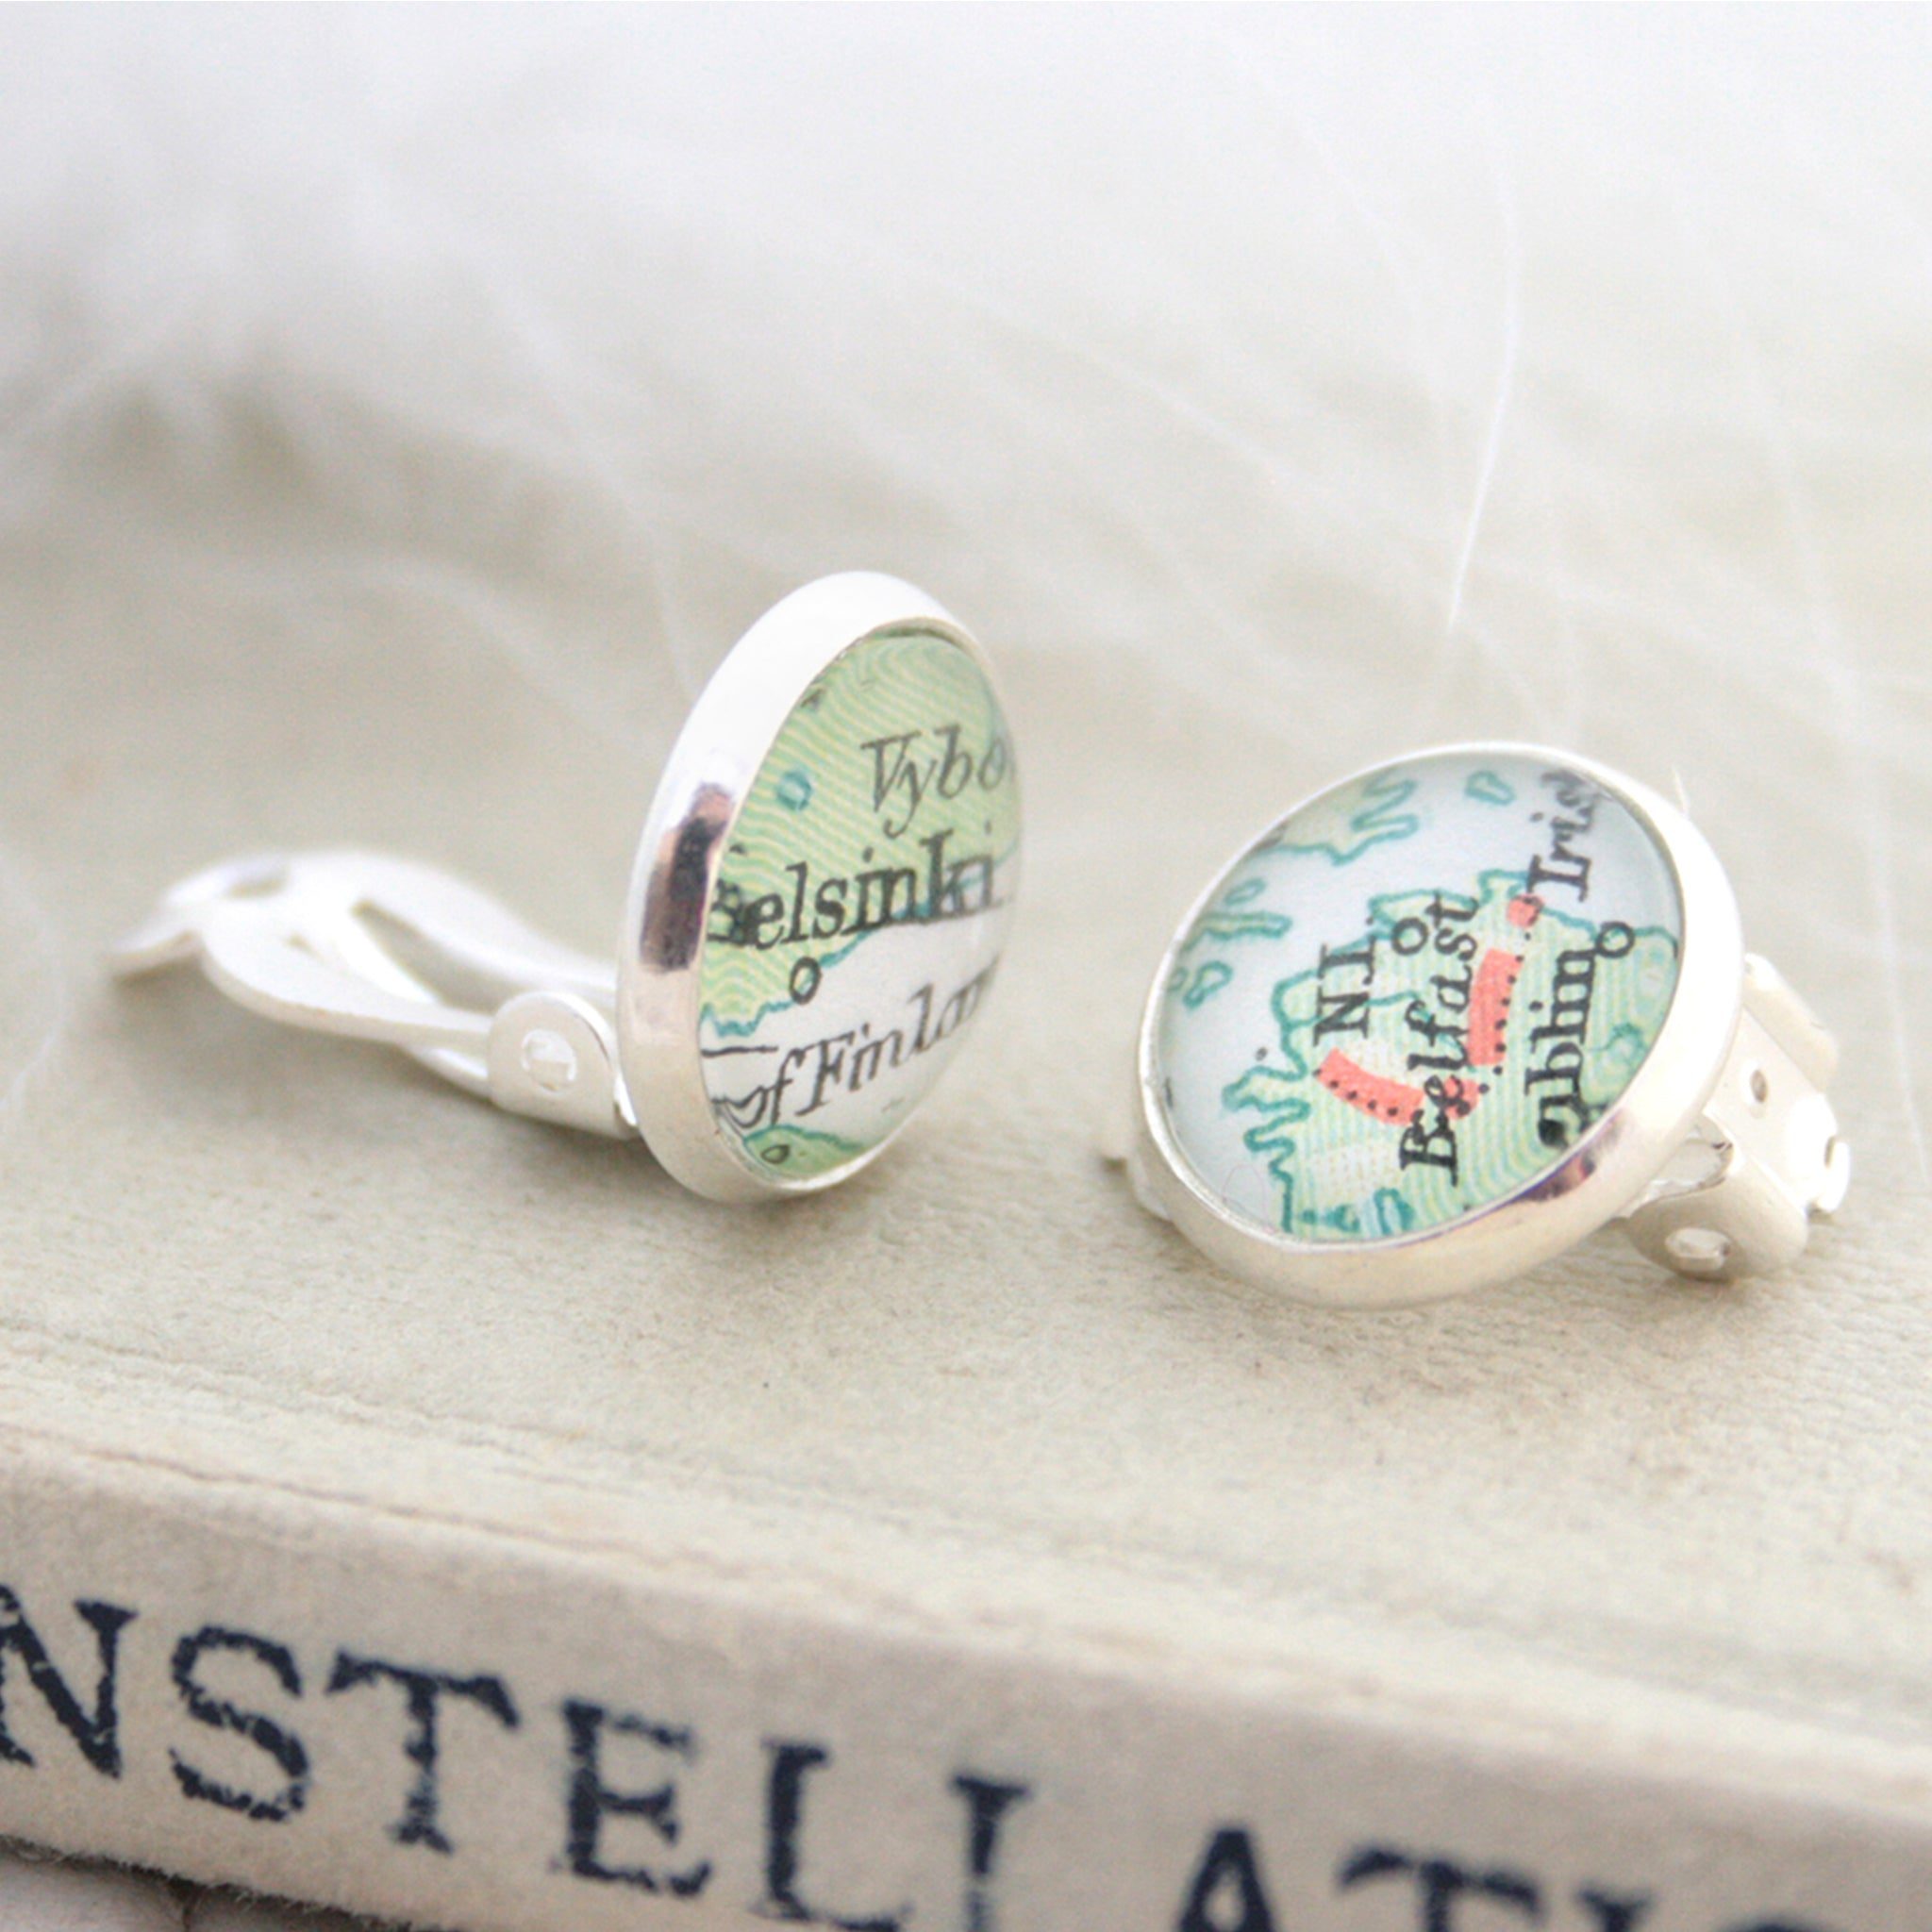 Custom clip on earrings in silver tone featuring vintage maps